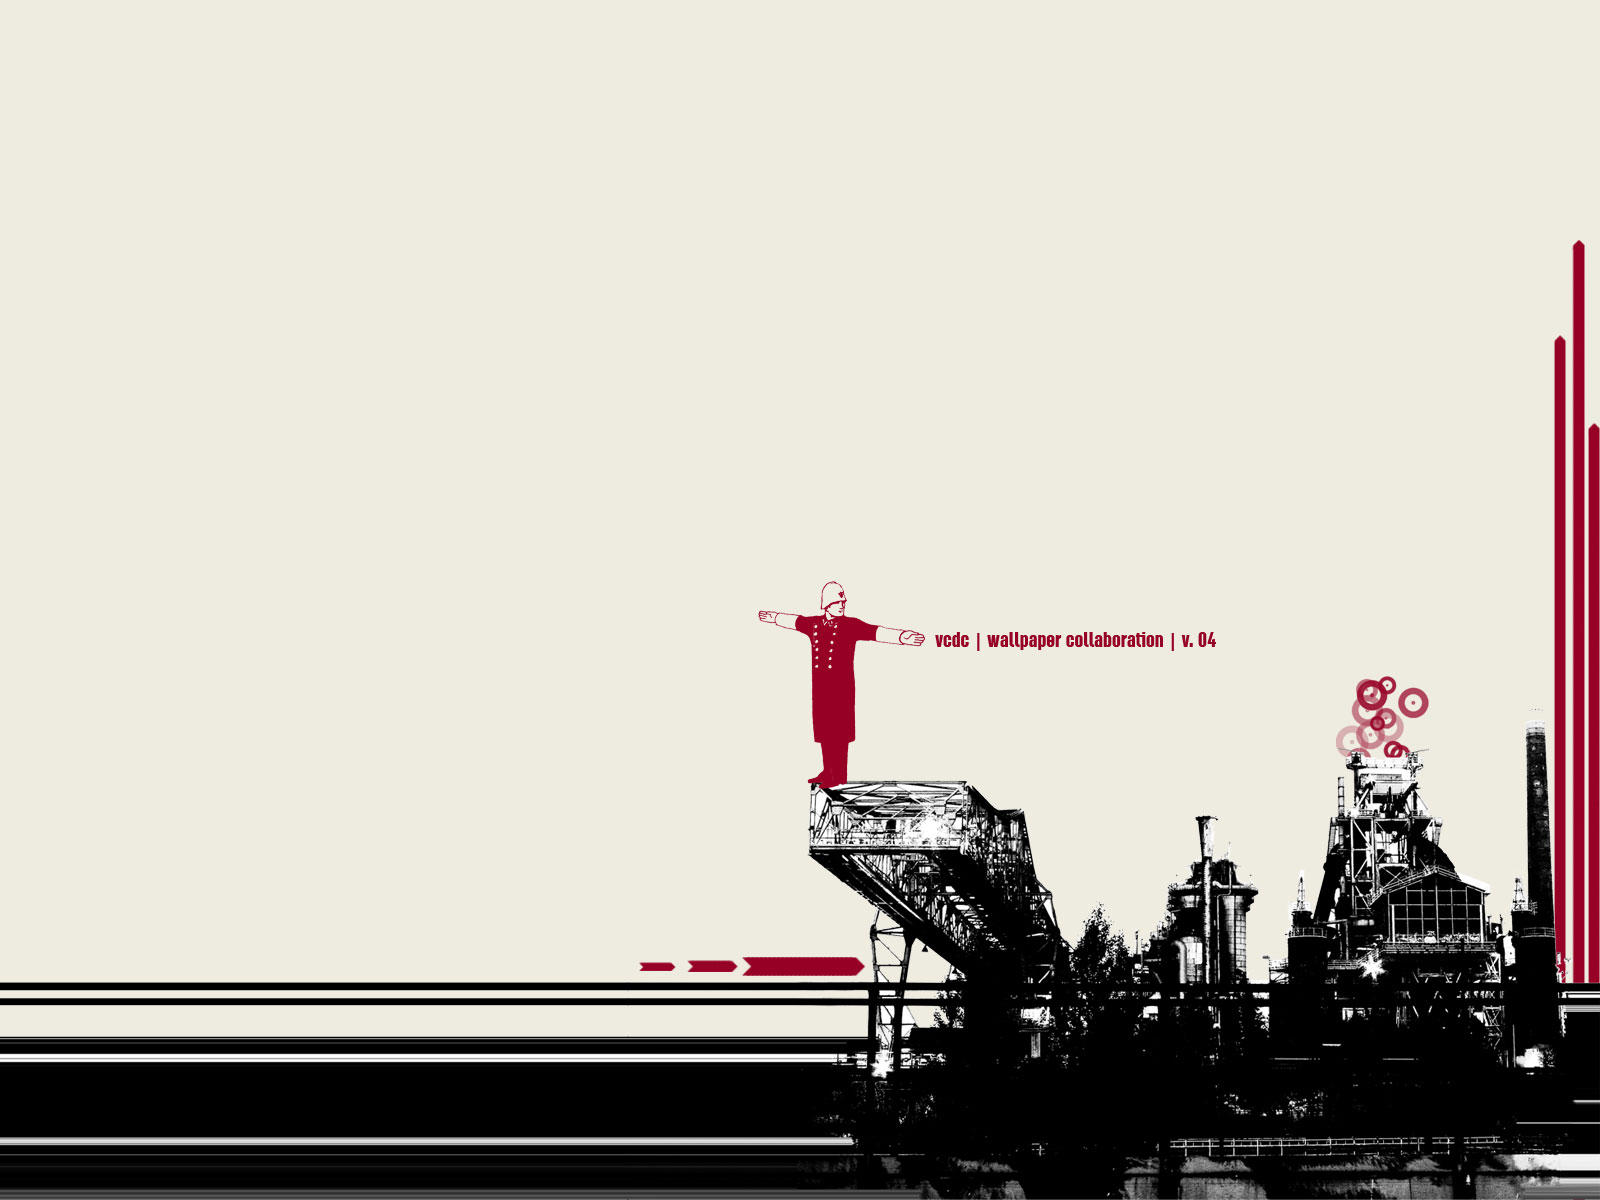 industrial wallpaper by alexbipbip on DeviantArt